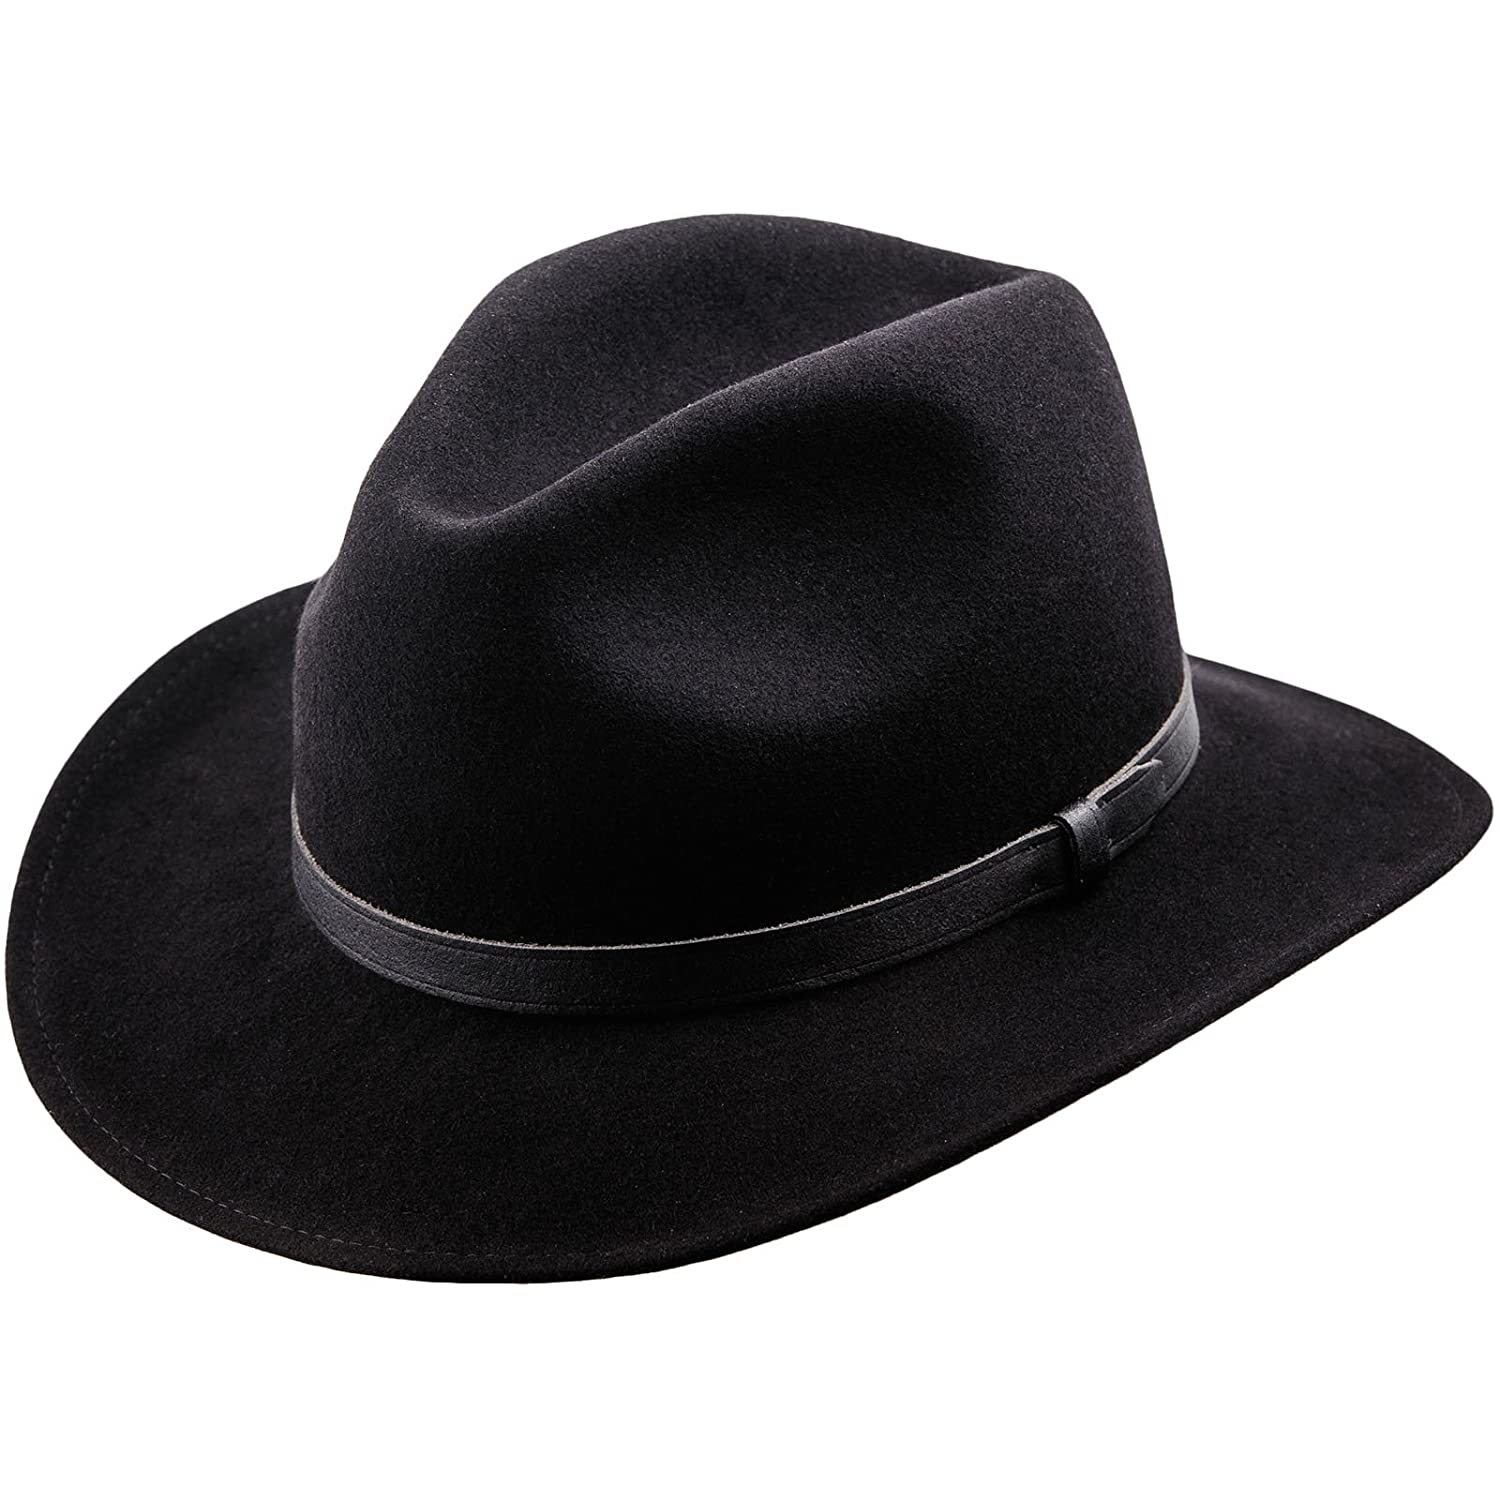 2341b606af45b Sterkowski Redwood Wool Felt Wide Brim Fedora Hat US 7 1 2 Black   Amazon.in  Clothing   Accessories